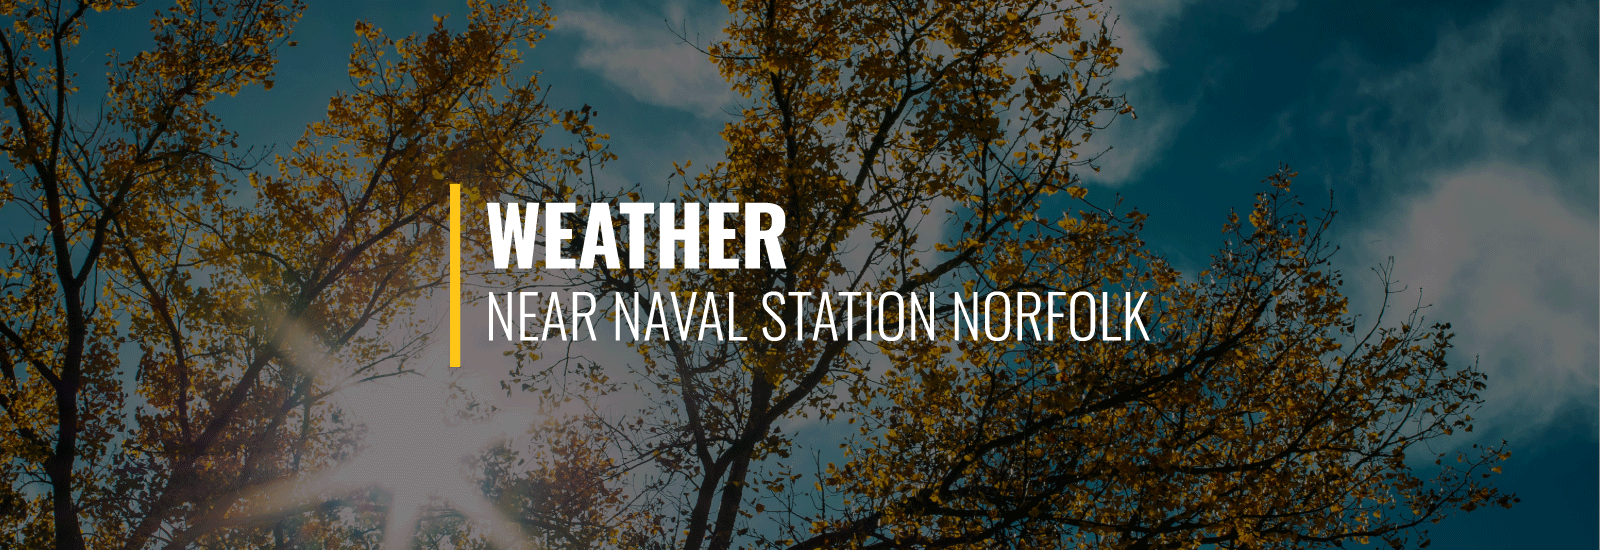 Naval Station Norfolk Weather